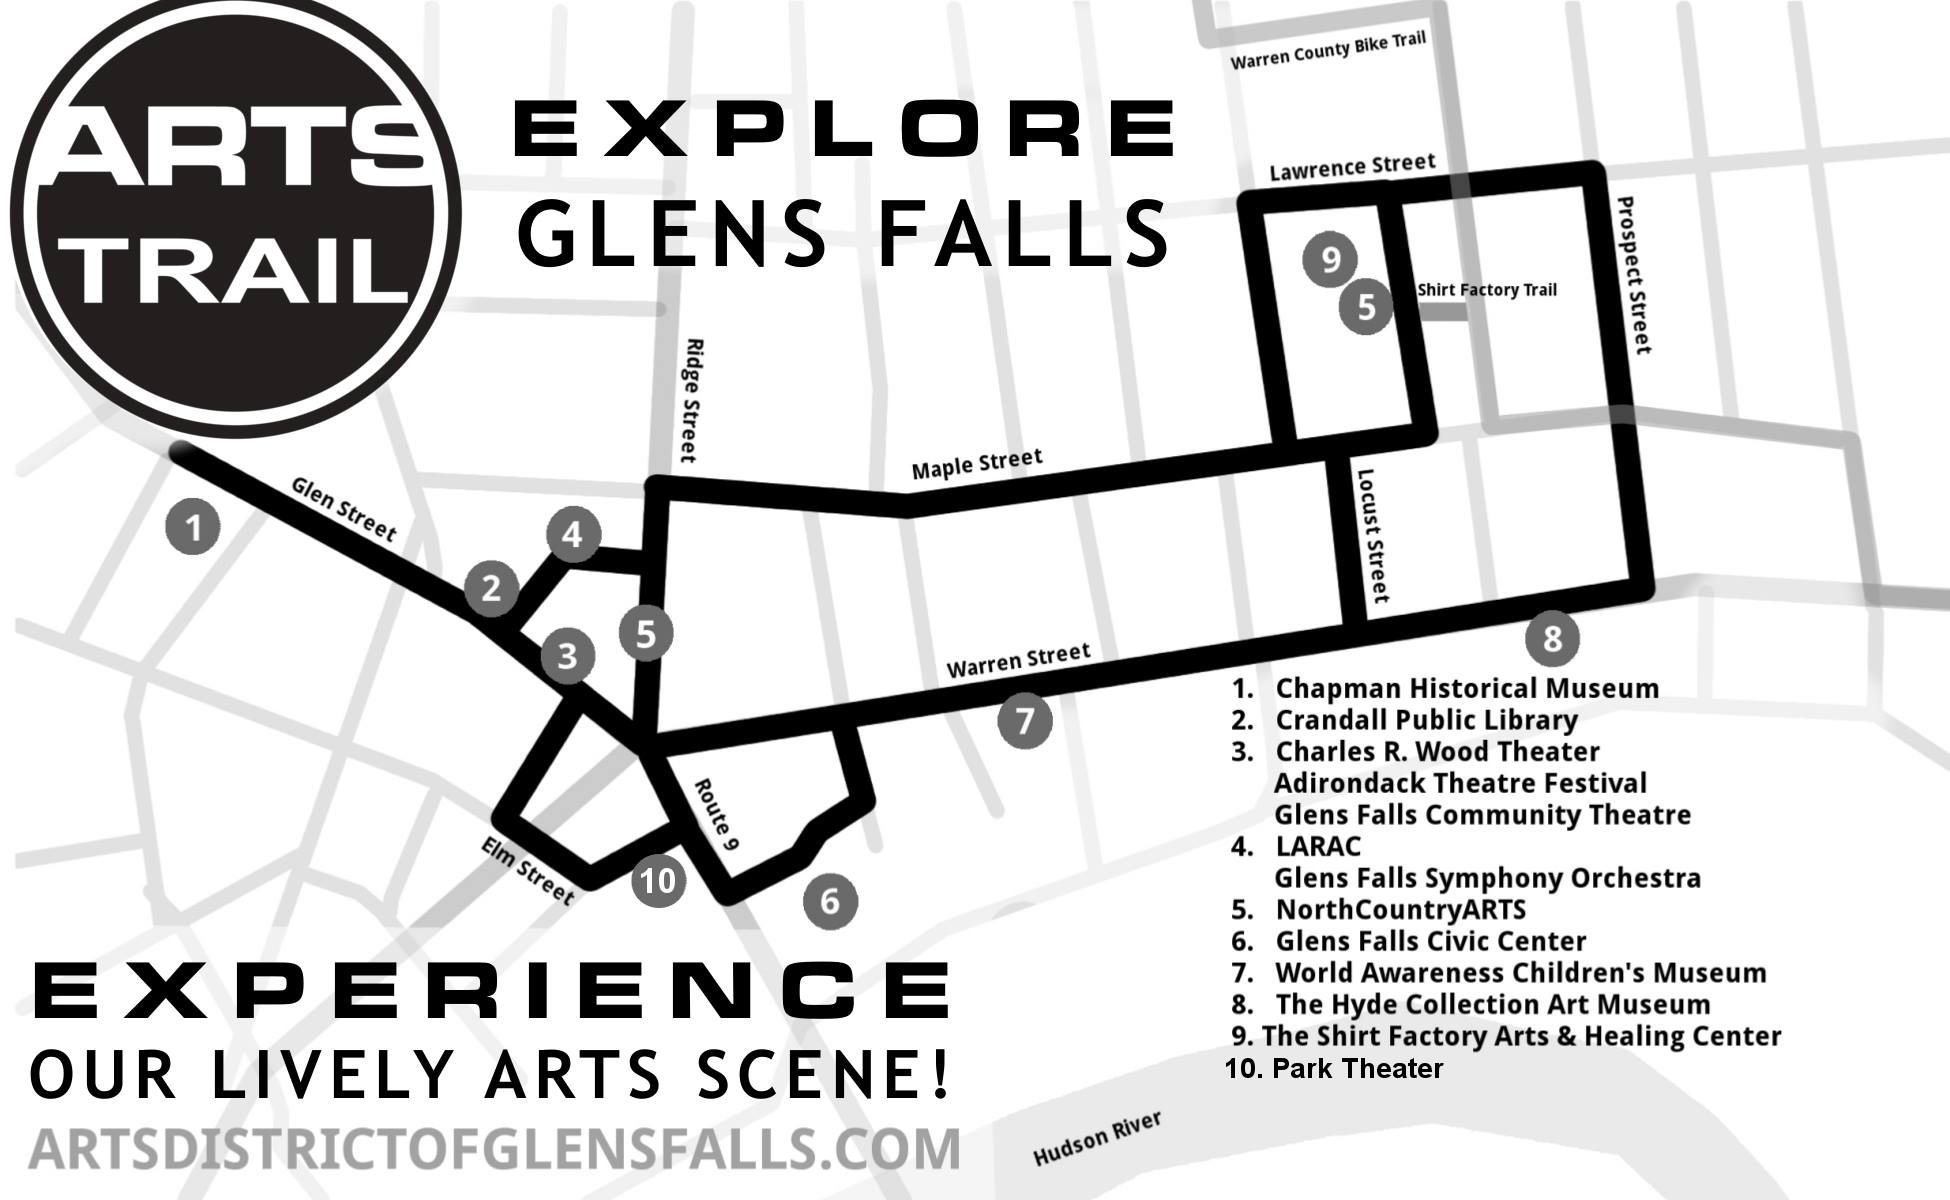 Glens Falls has one trail to connect them all